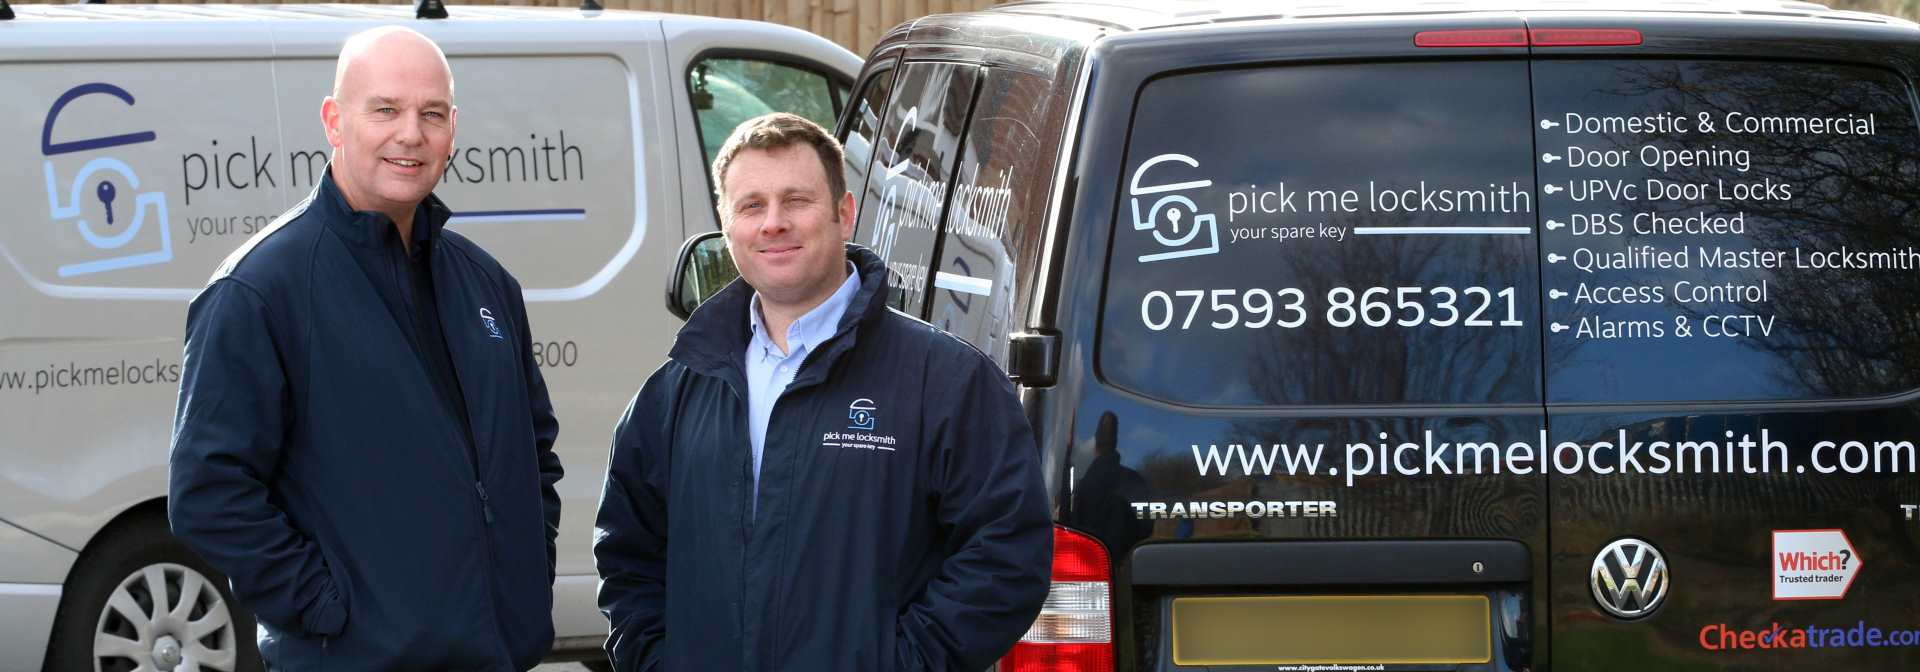 Mark and Steve from Pick Me Locksmith Ltd - Midlands Locksmith - Alarms Fitter - CCTV Installers - Access Control Systems